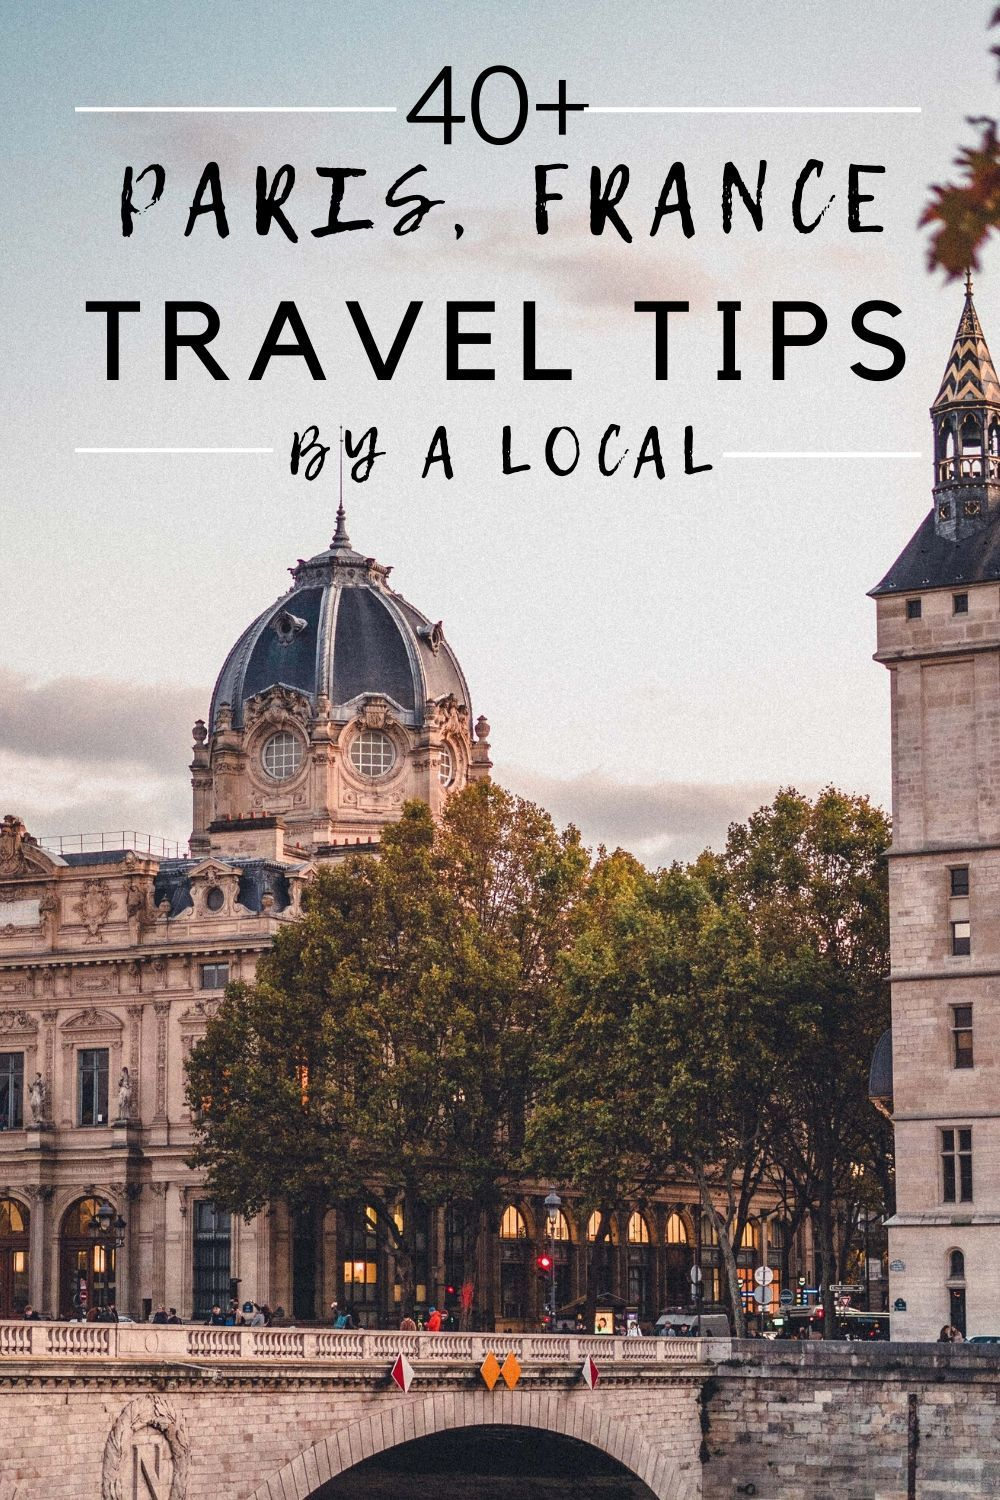 First time in Paris? Here are 40+ Paris Travel Tips You Need to Know Before Visiting Paris, France